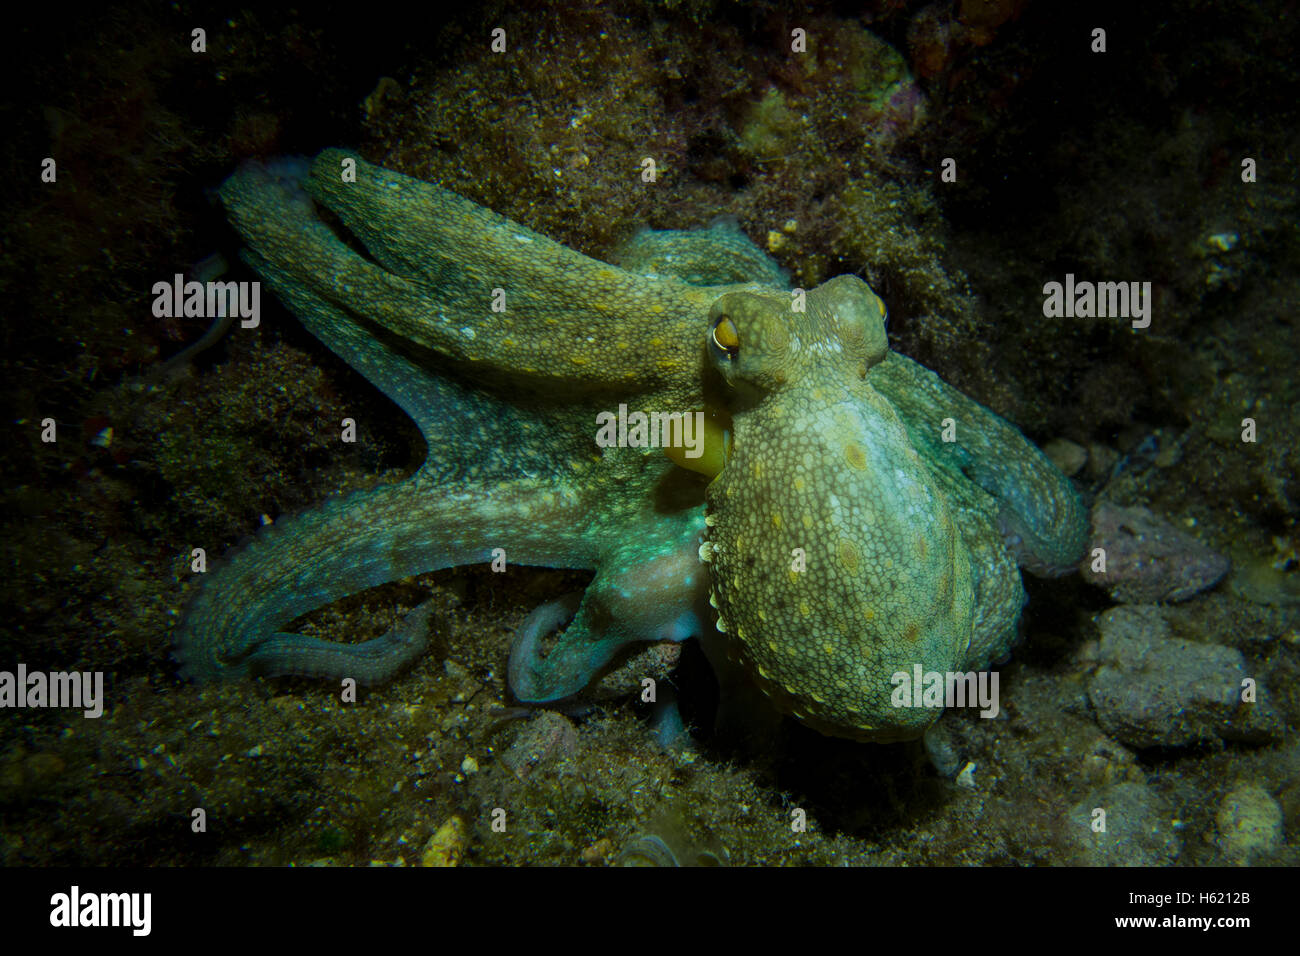 Octopus, Octopus vulgaris, close-up form the Mediterranean Sea. This picture was taken in Malta. - Stock Image